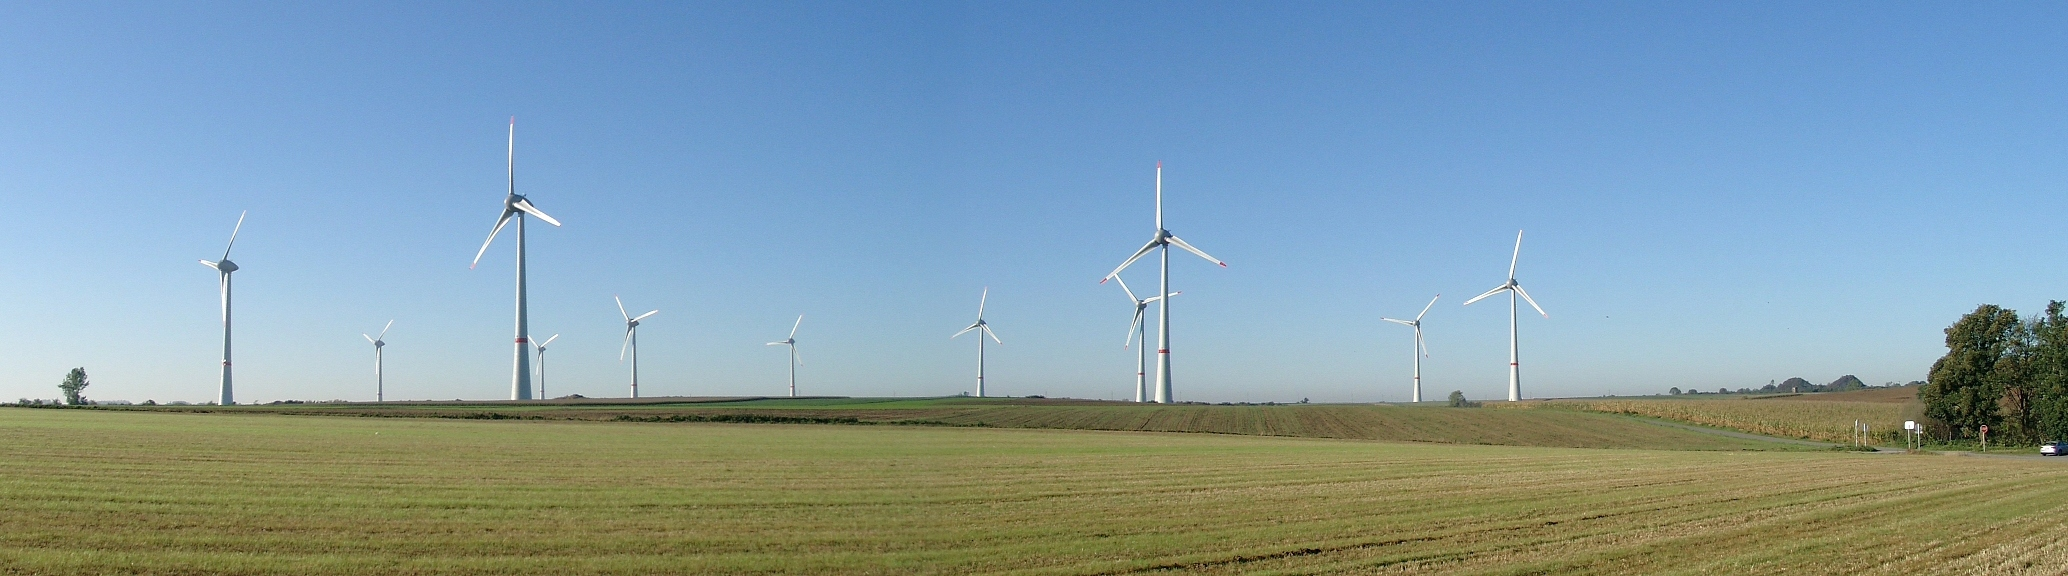 https://upload.wikimedia.org/wikipedia/commons/9/97/11_turbines_E-126_7%2C5MW_wind_farm_Estinnes_Belgium.jpg